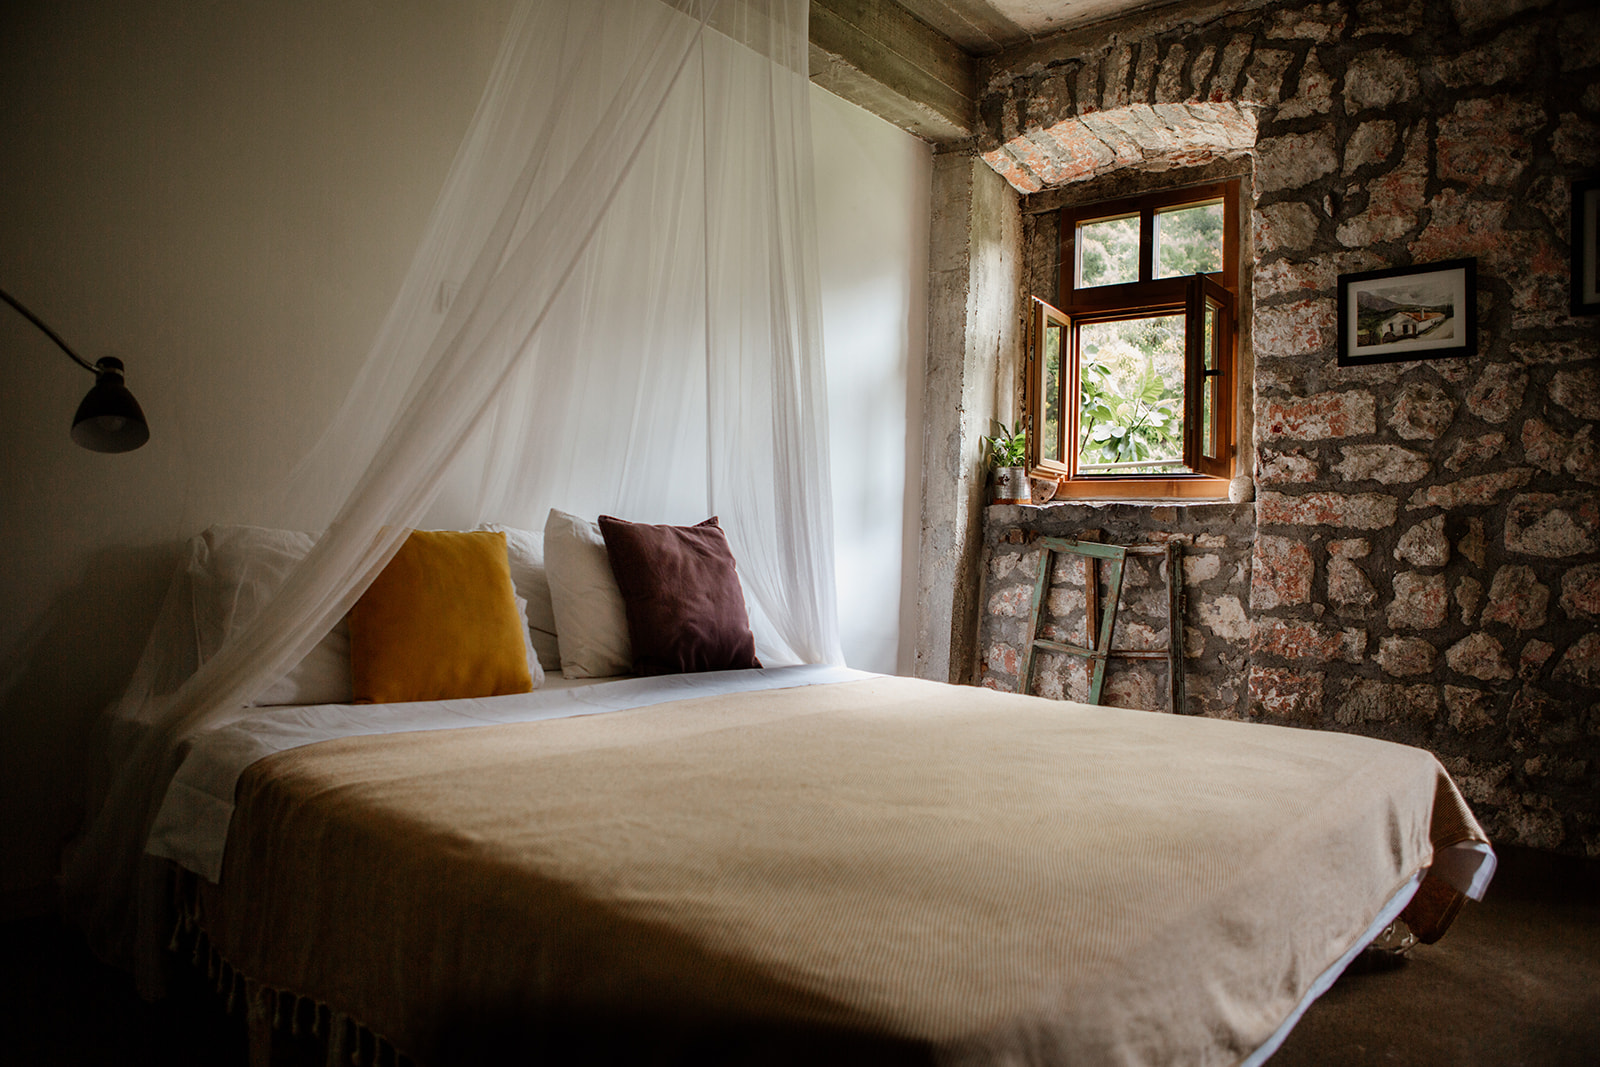 double bed stone wall and window yoga holiday montenegro